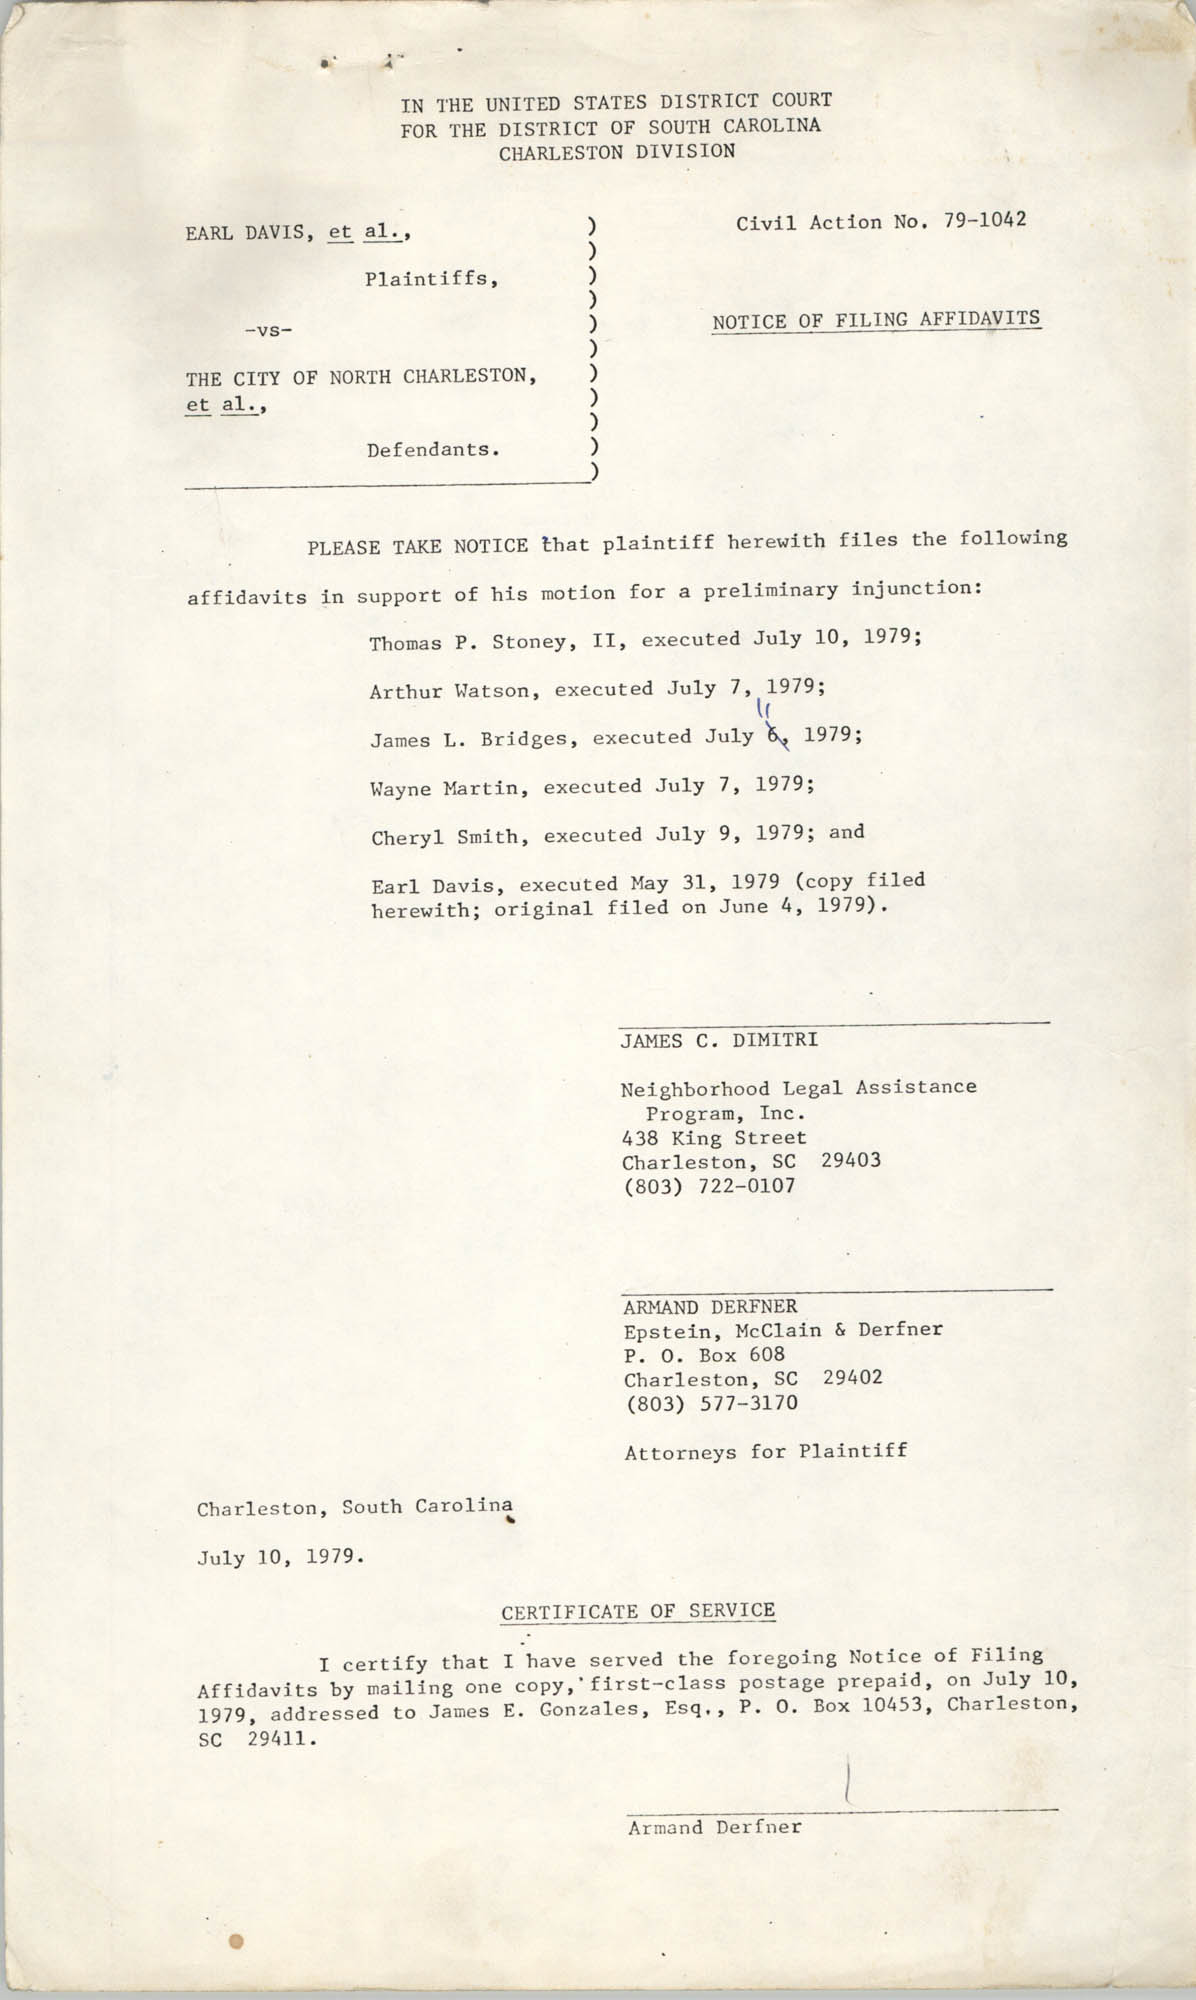 Civil Action No. 79-1042 Notice of Filing Affidavits, Charleston Division, Earl Davis, Jr. vs. The City of North Charleston